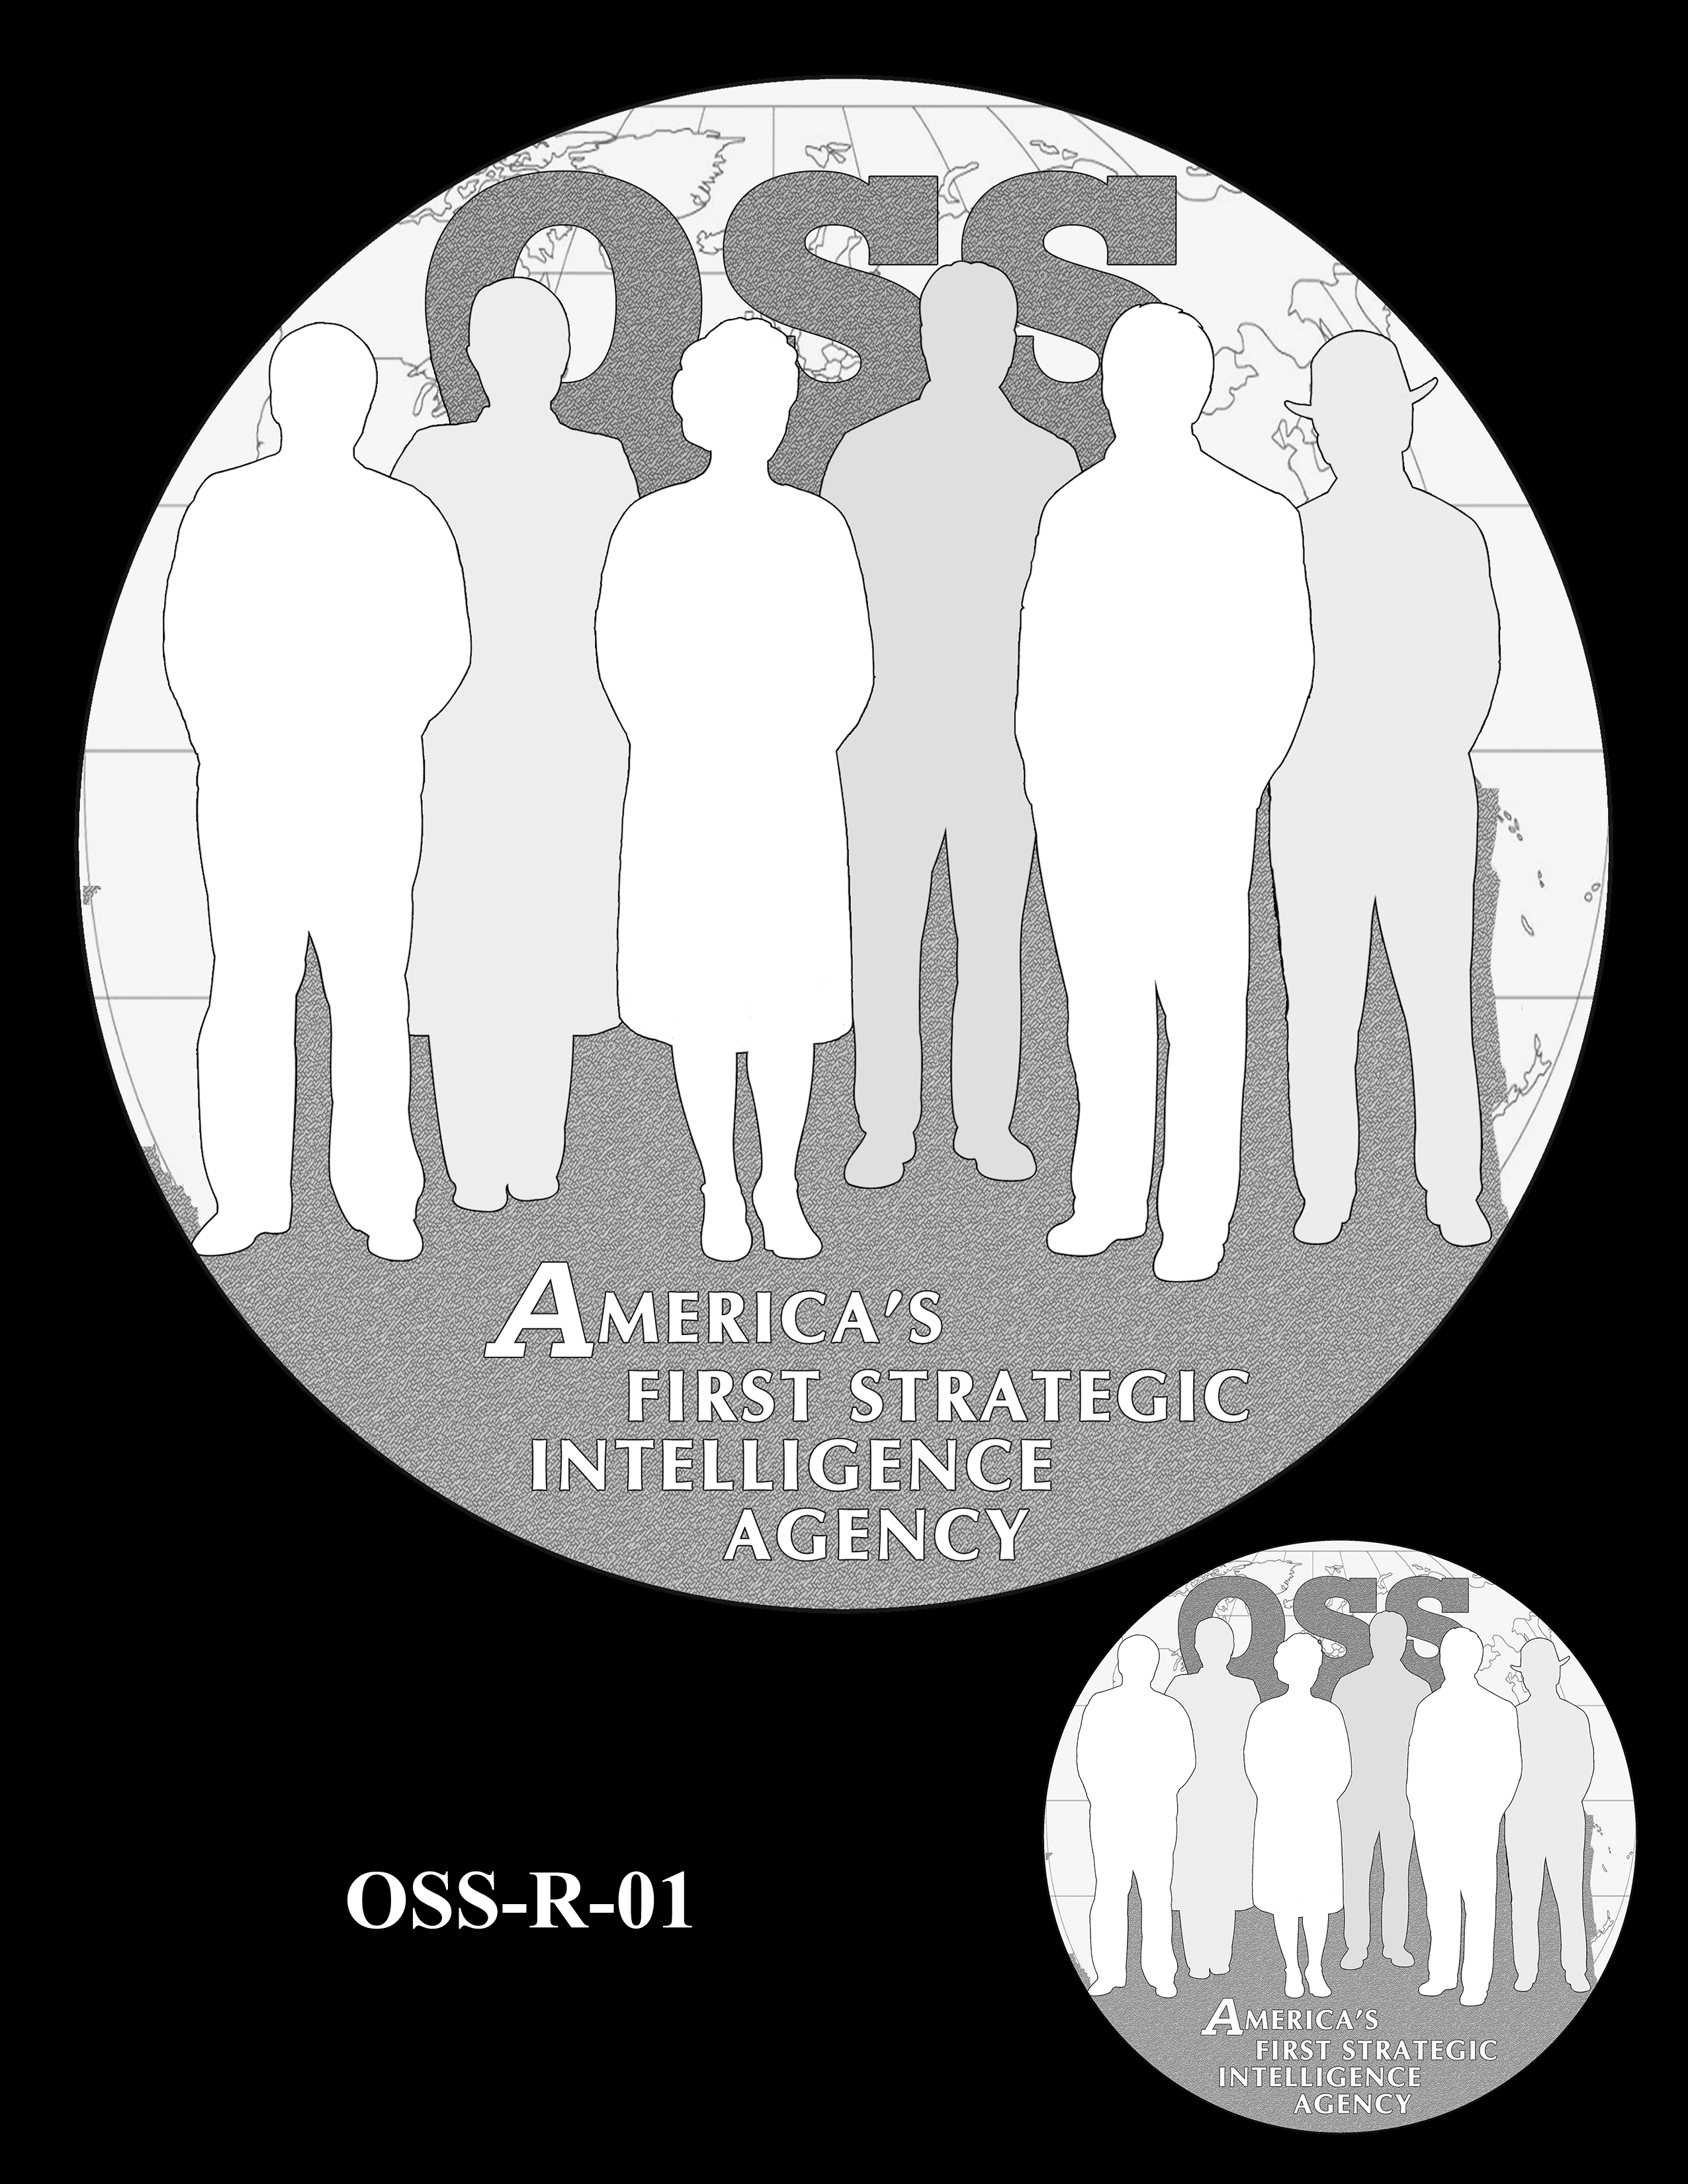 OSS-R-01 -- Office of Strategic Services Congressional Gold Medal